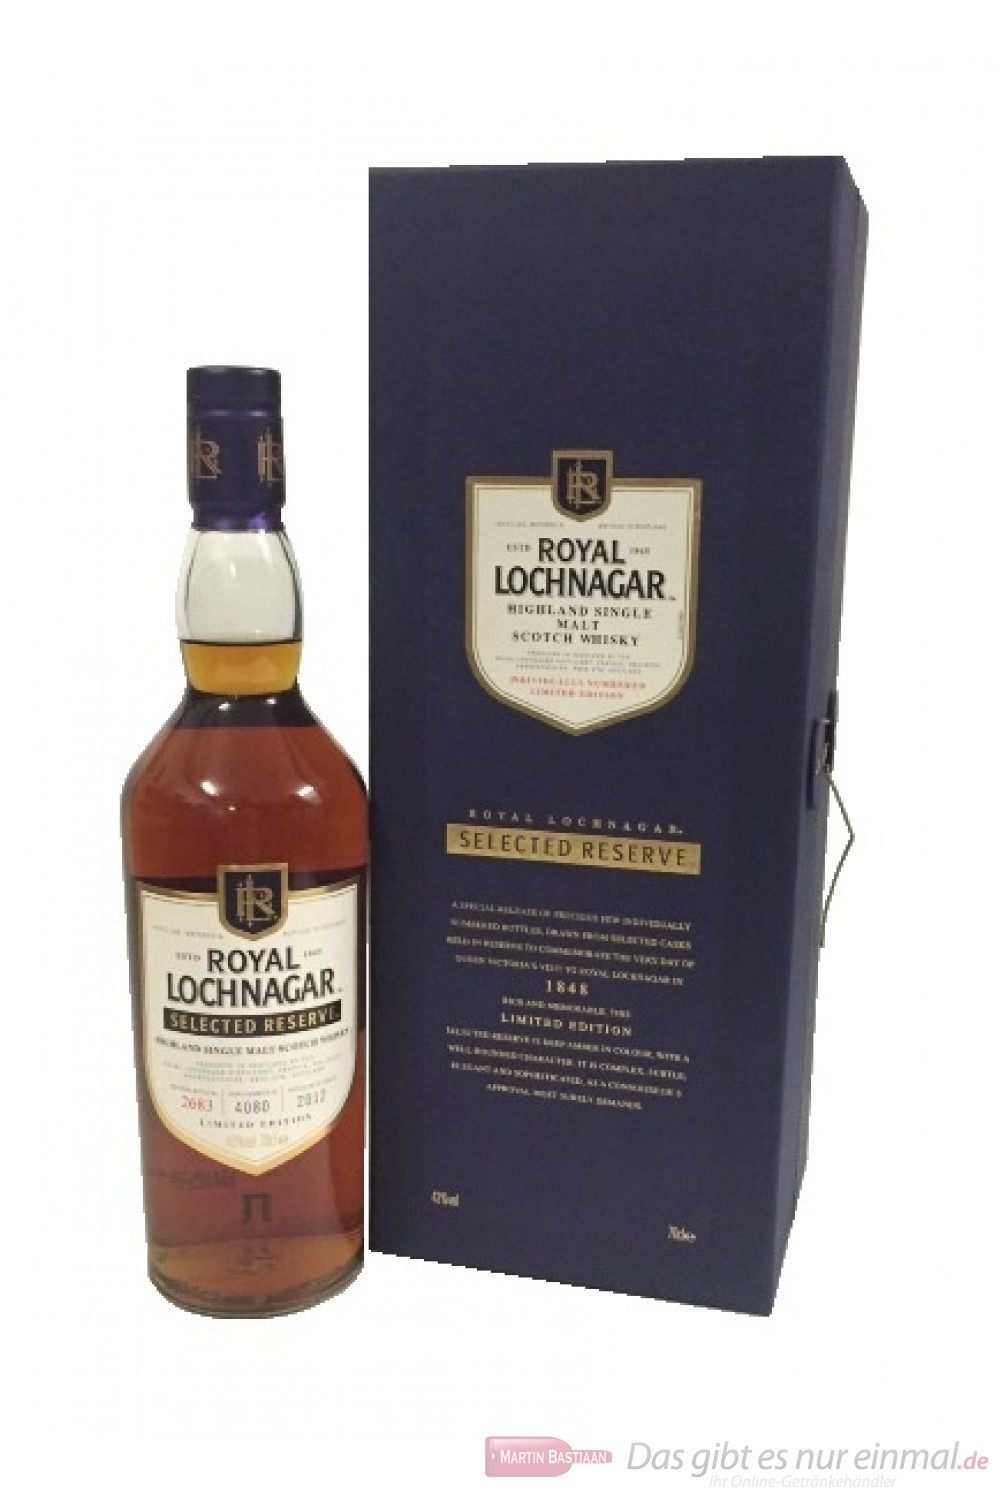 Royal Lochnagar Selected Reserve 2012